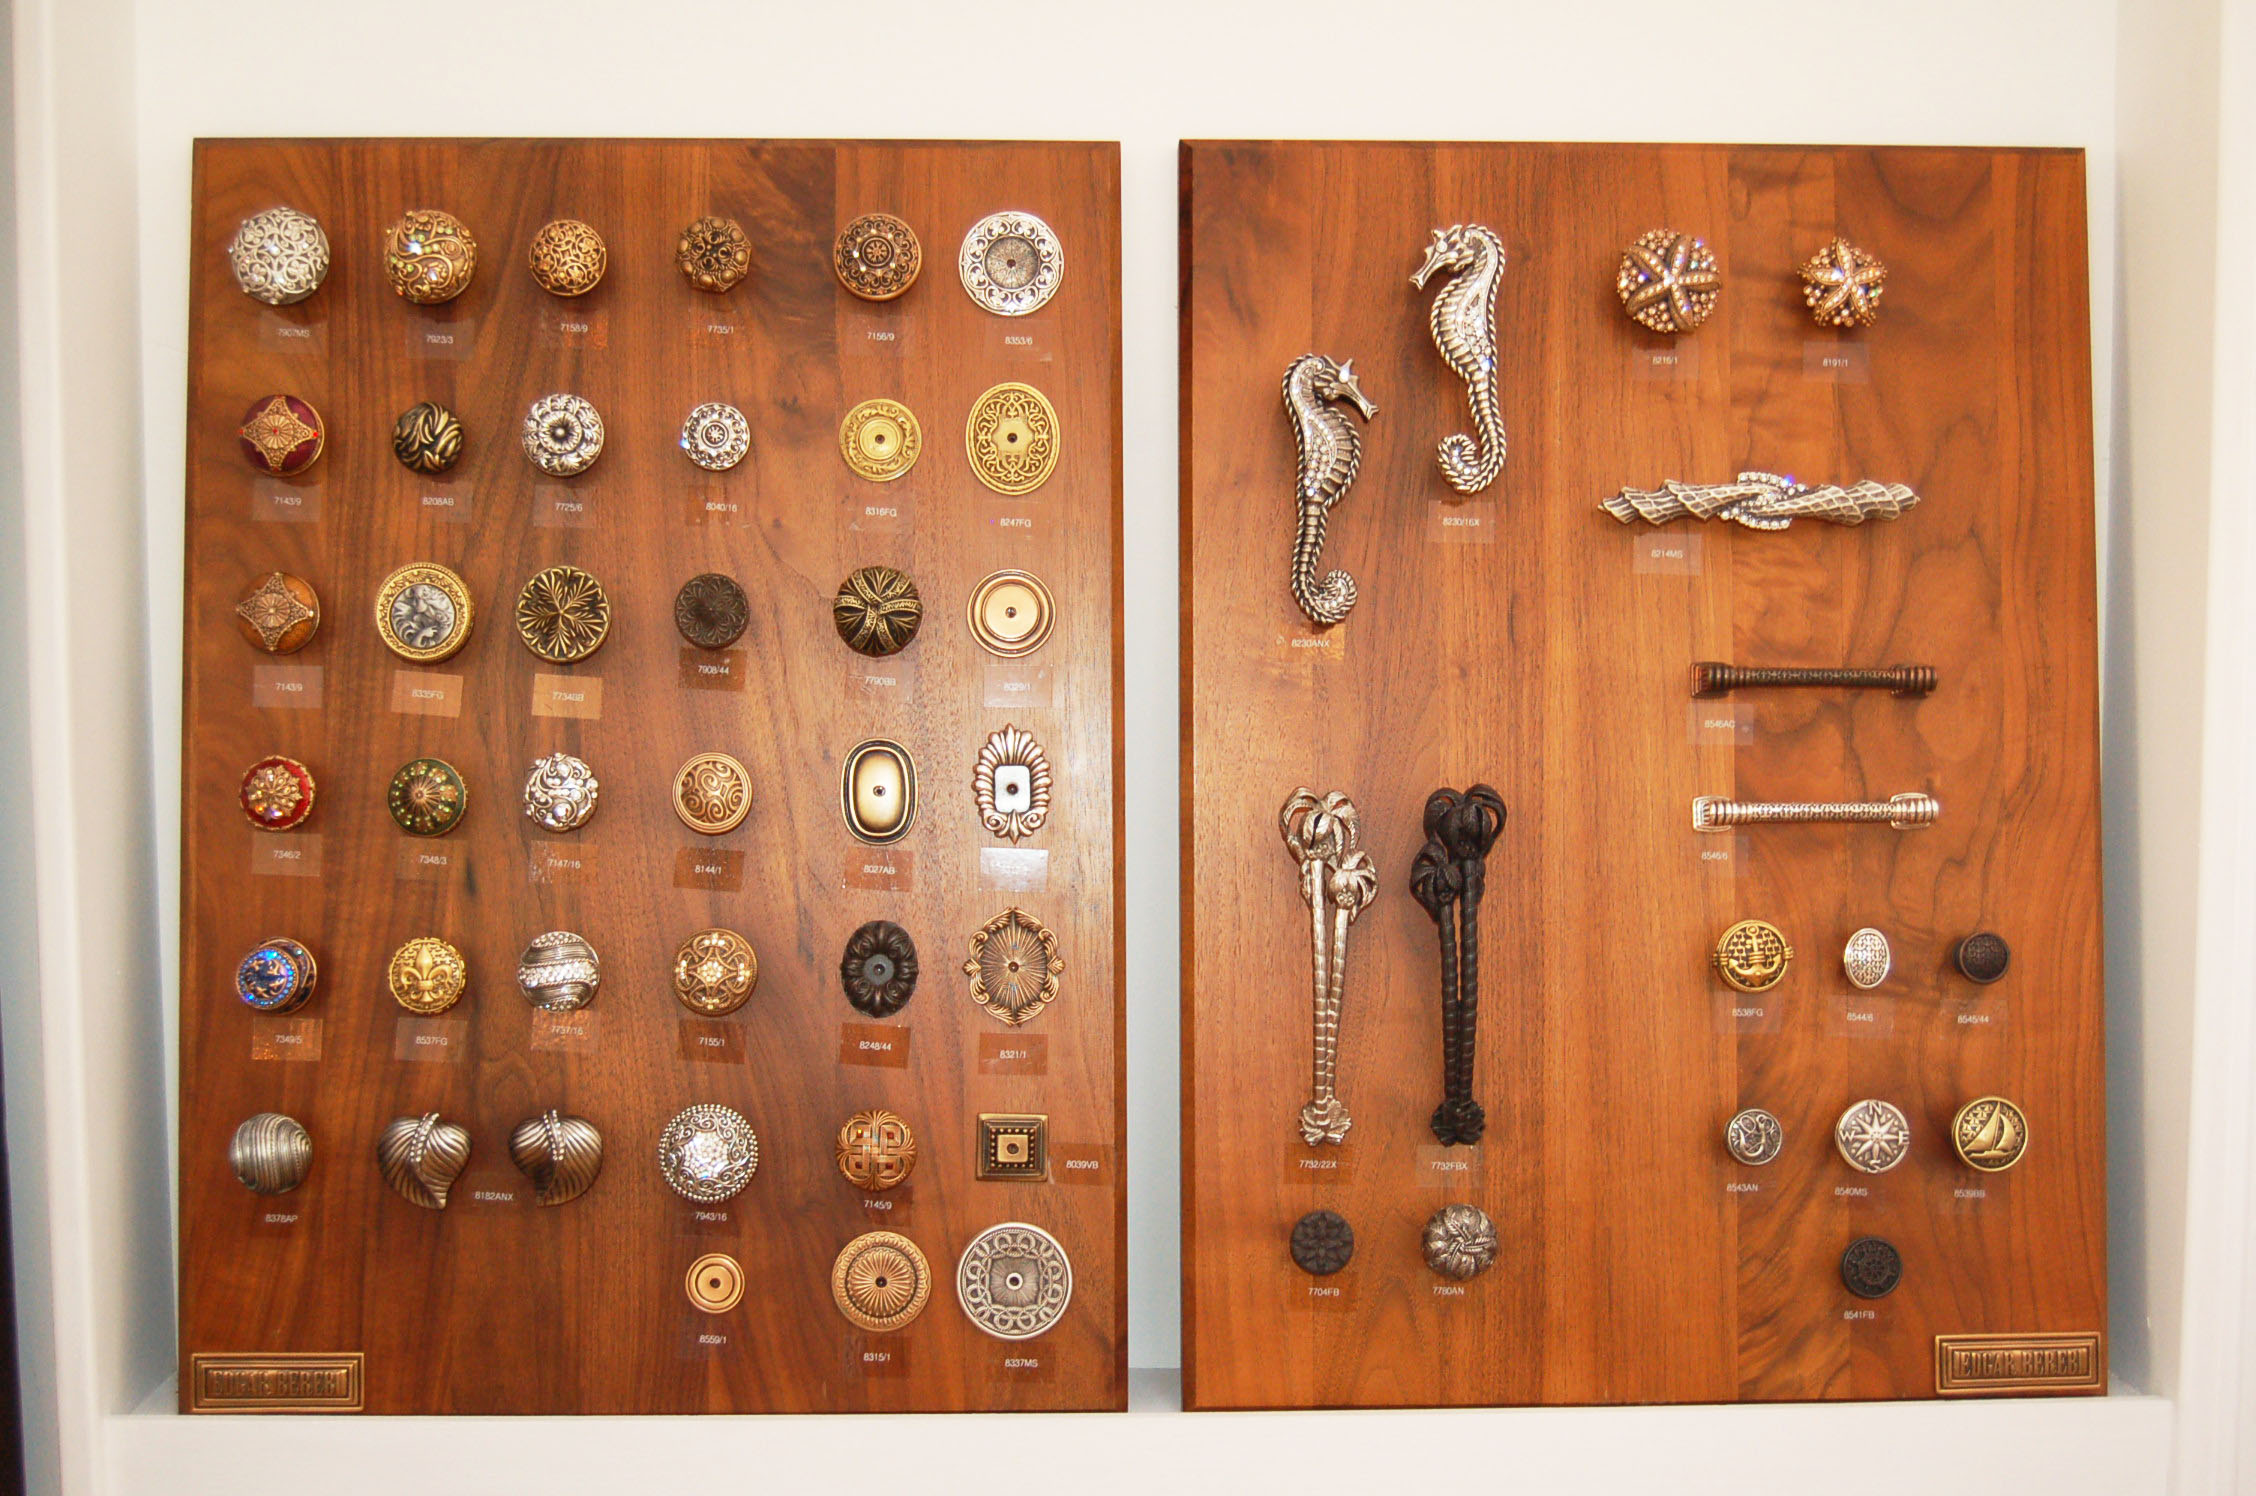 Dazzling knobs and hardware by Edgar Berebi